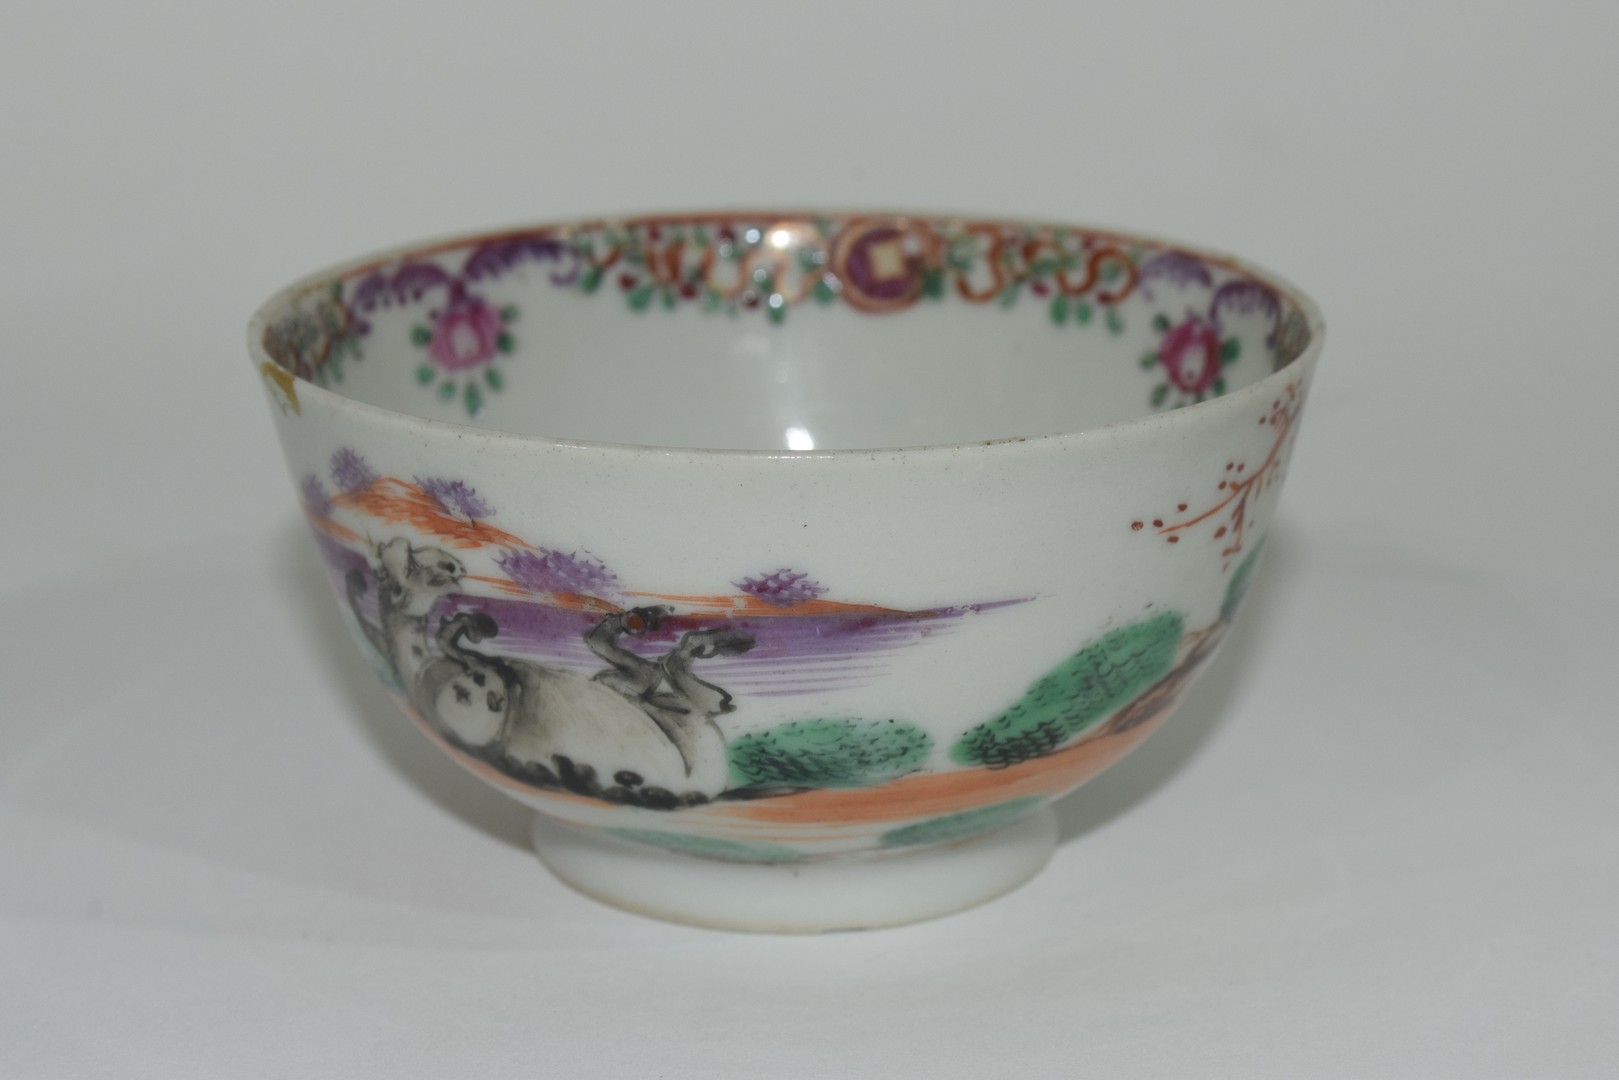 Small Chinese bowl, 18th century - Image 4 of 13